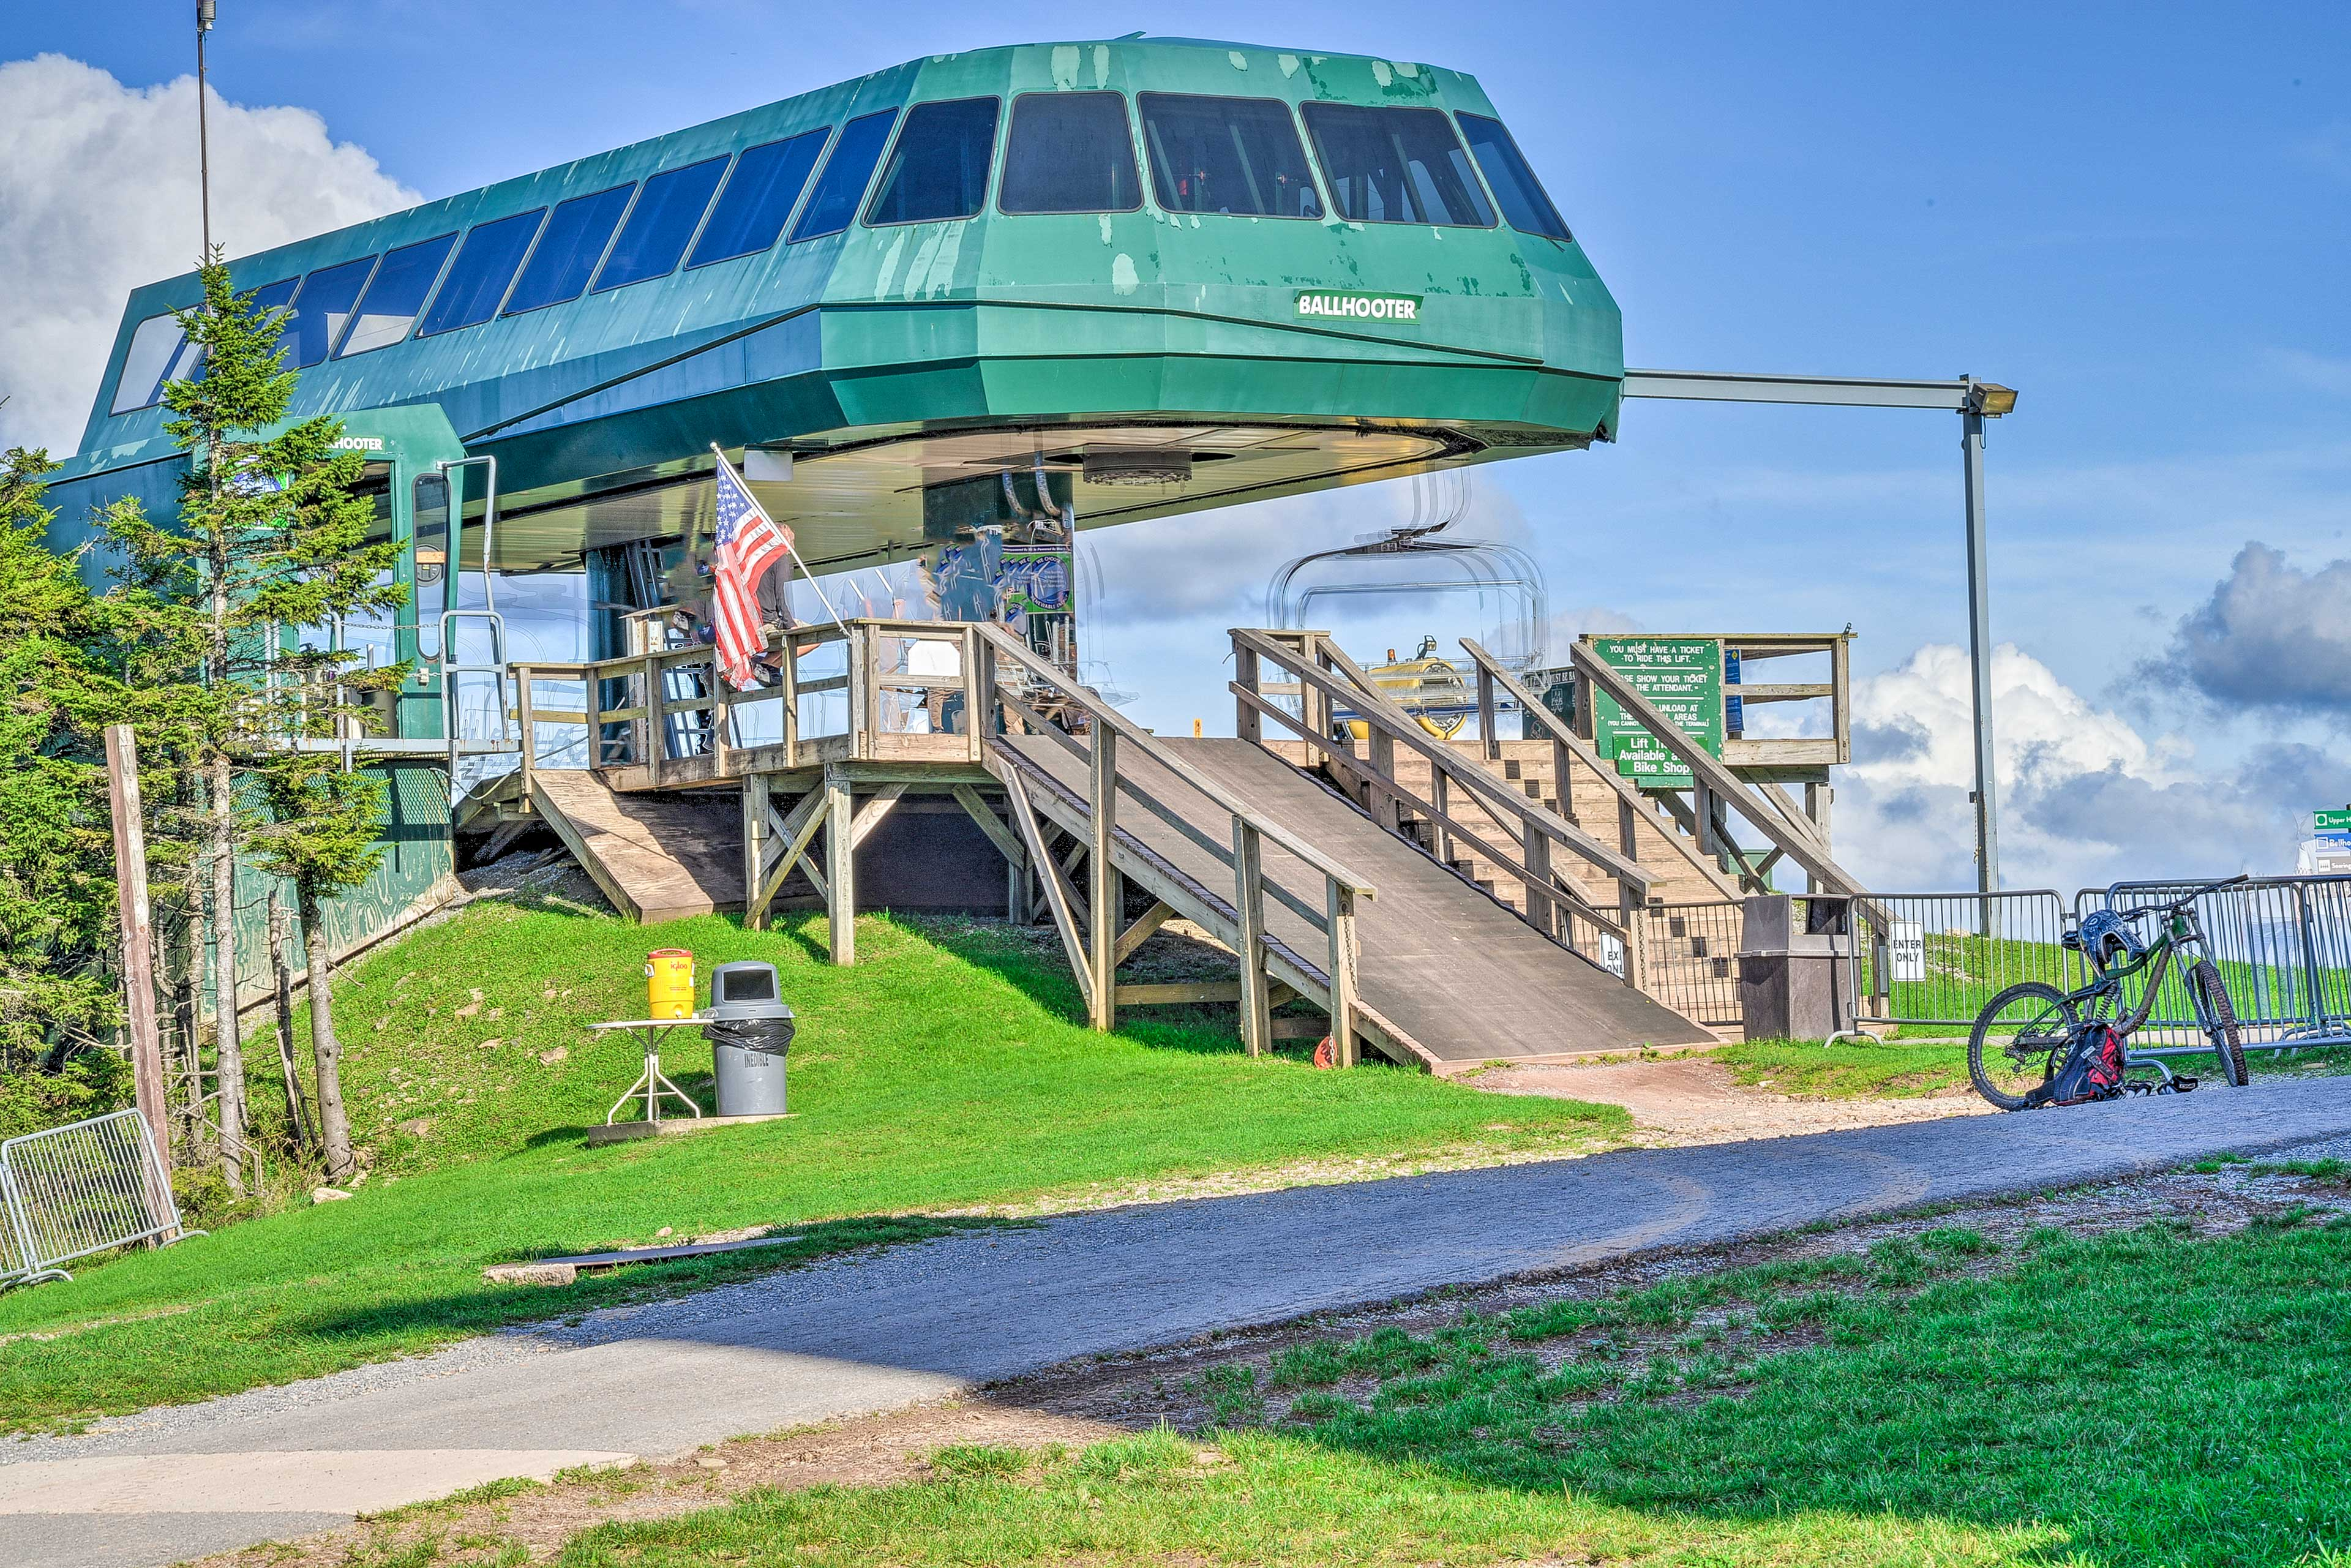 The ski lift is just a quick walk away from the vacation rental.